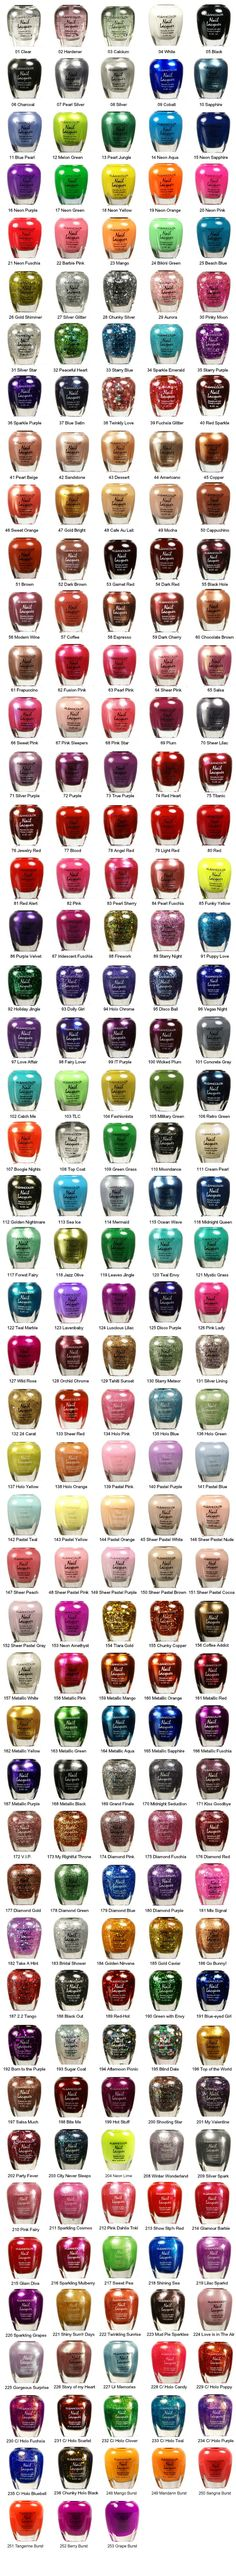 KLEANCOLOR Nail Lacquer. I shit you not, I want them ALL!